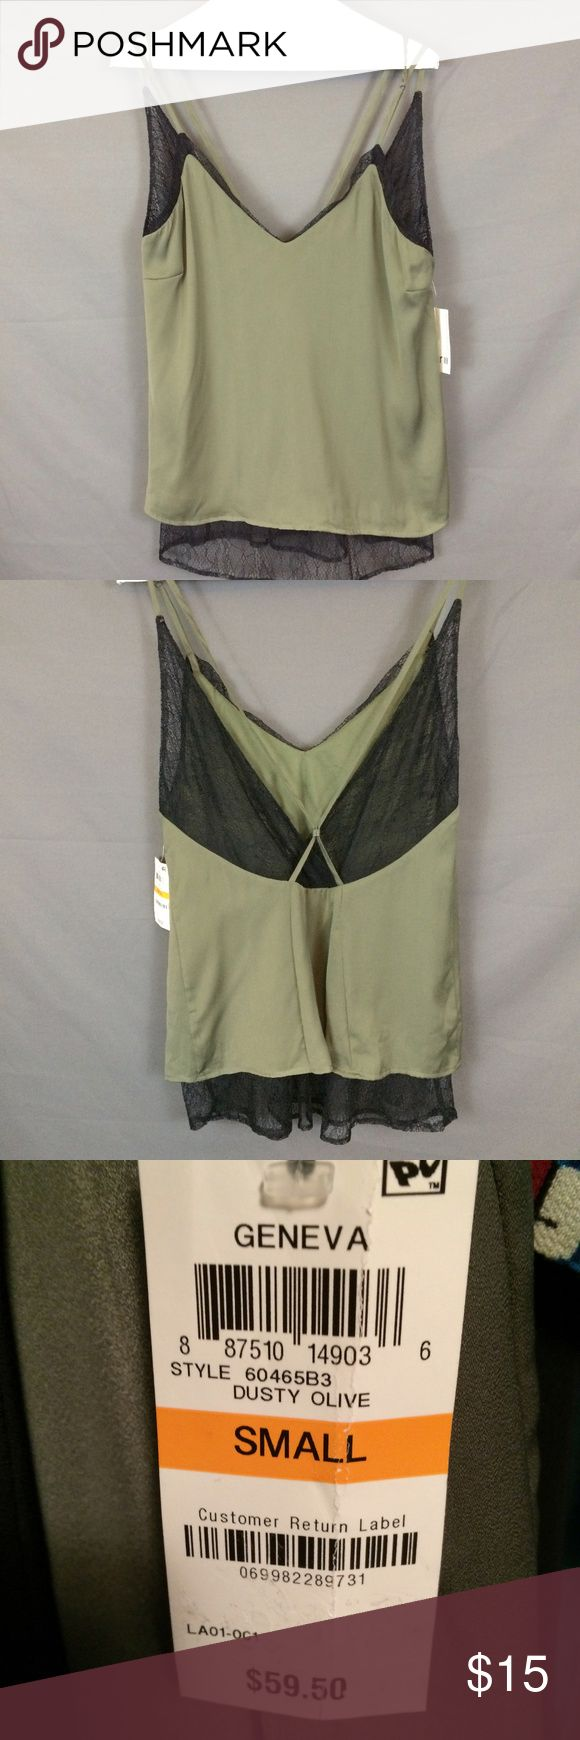 Green Black Cami Top Lace Trim Layered-Look V Back Bar III Green Black Cami Top Lace Trim Layered-Look V Back Adj Straps Size S New  New with Tags  Retail price 59.50       Underarm to underarm is approx 17.5 Bar III Tops Camisoles